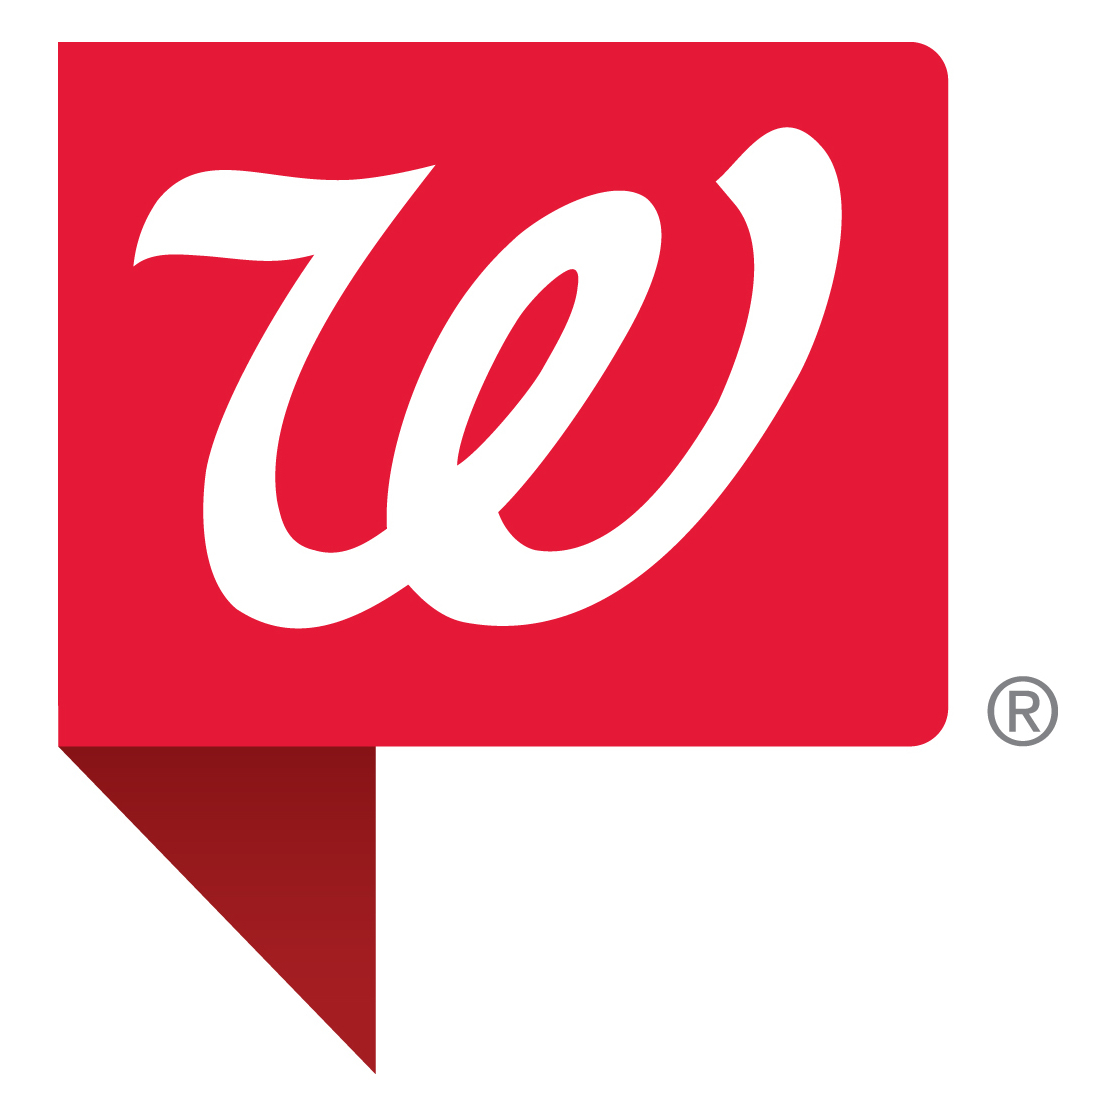 Walgreens - Daly City, CA - Pharmacist